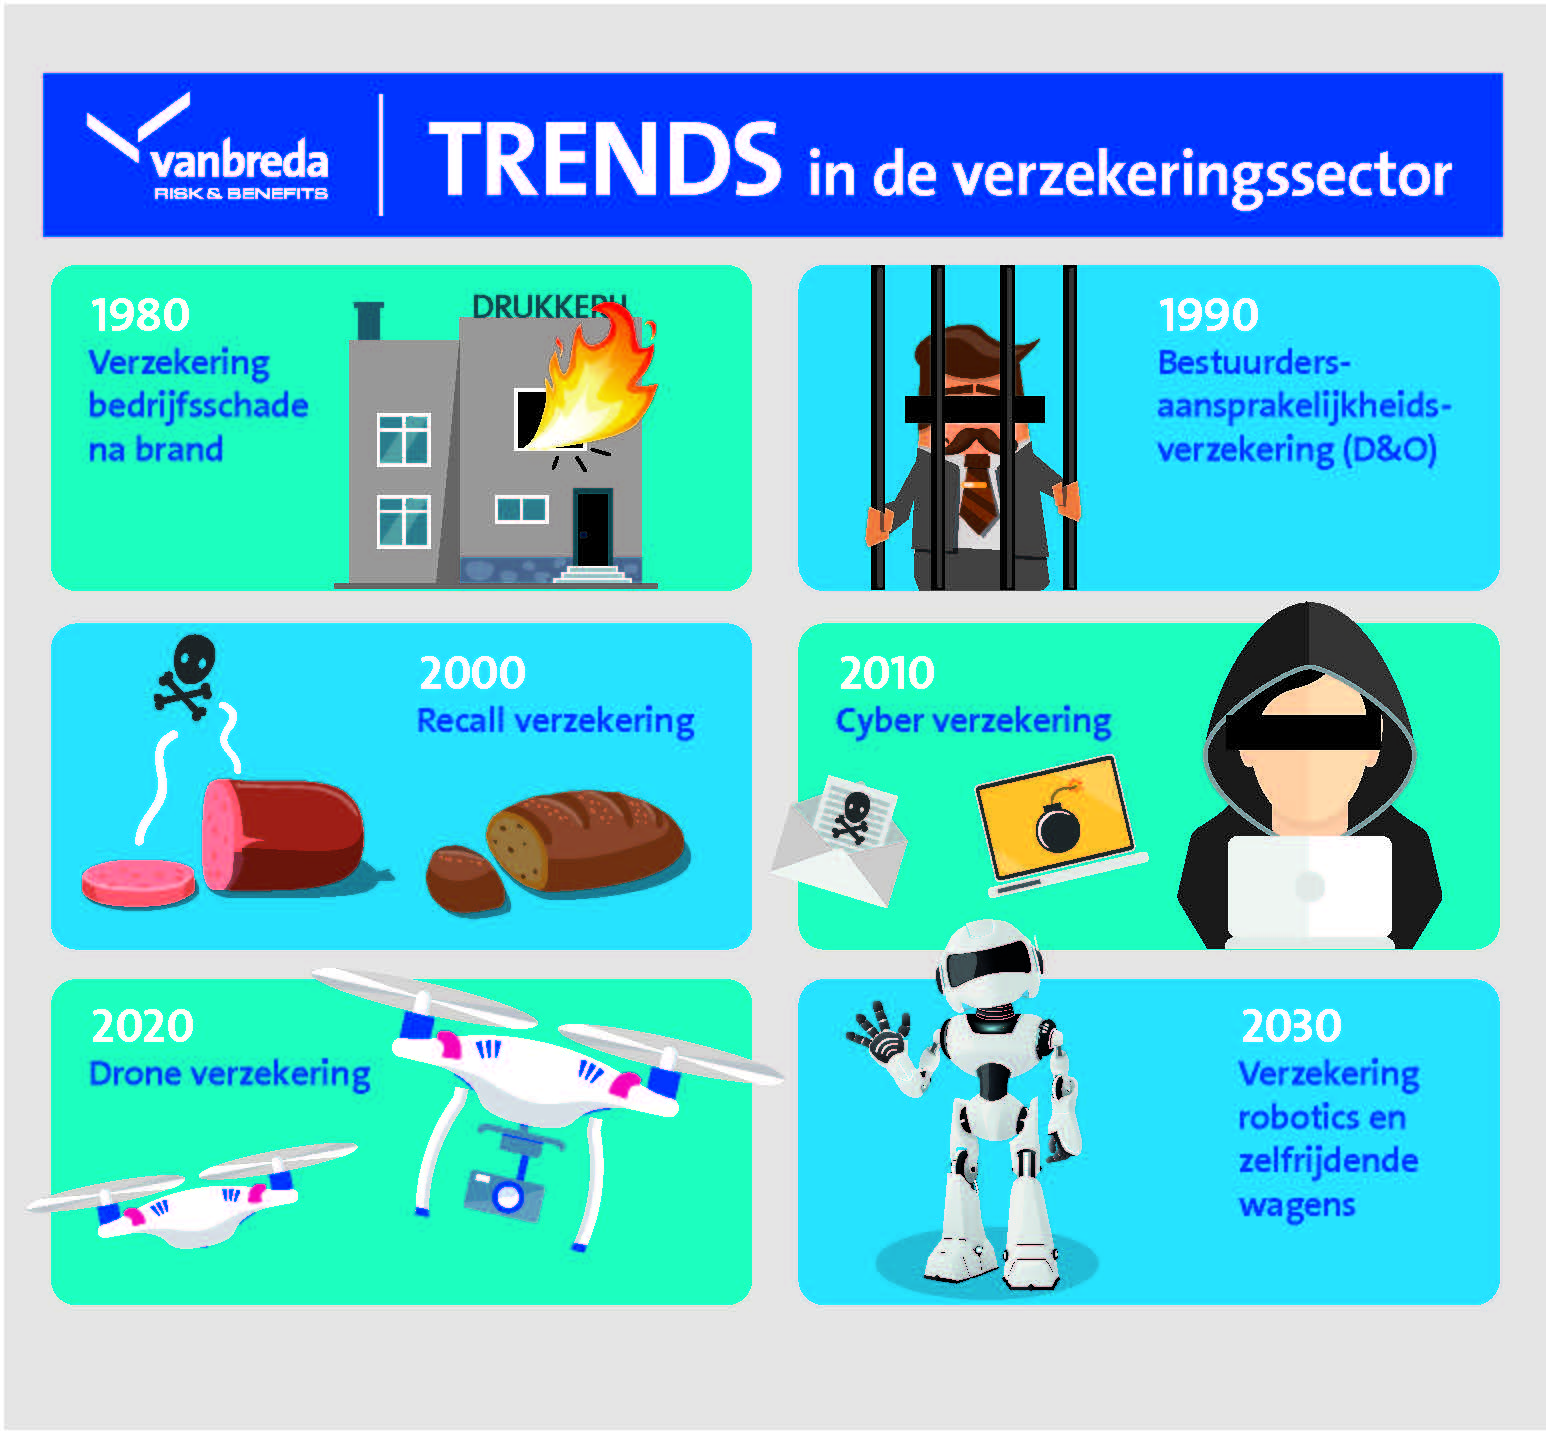 trends in verzekeringen